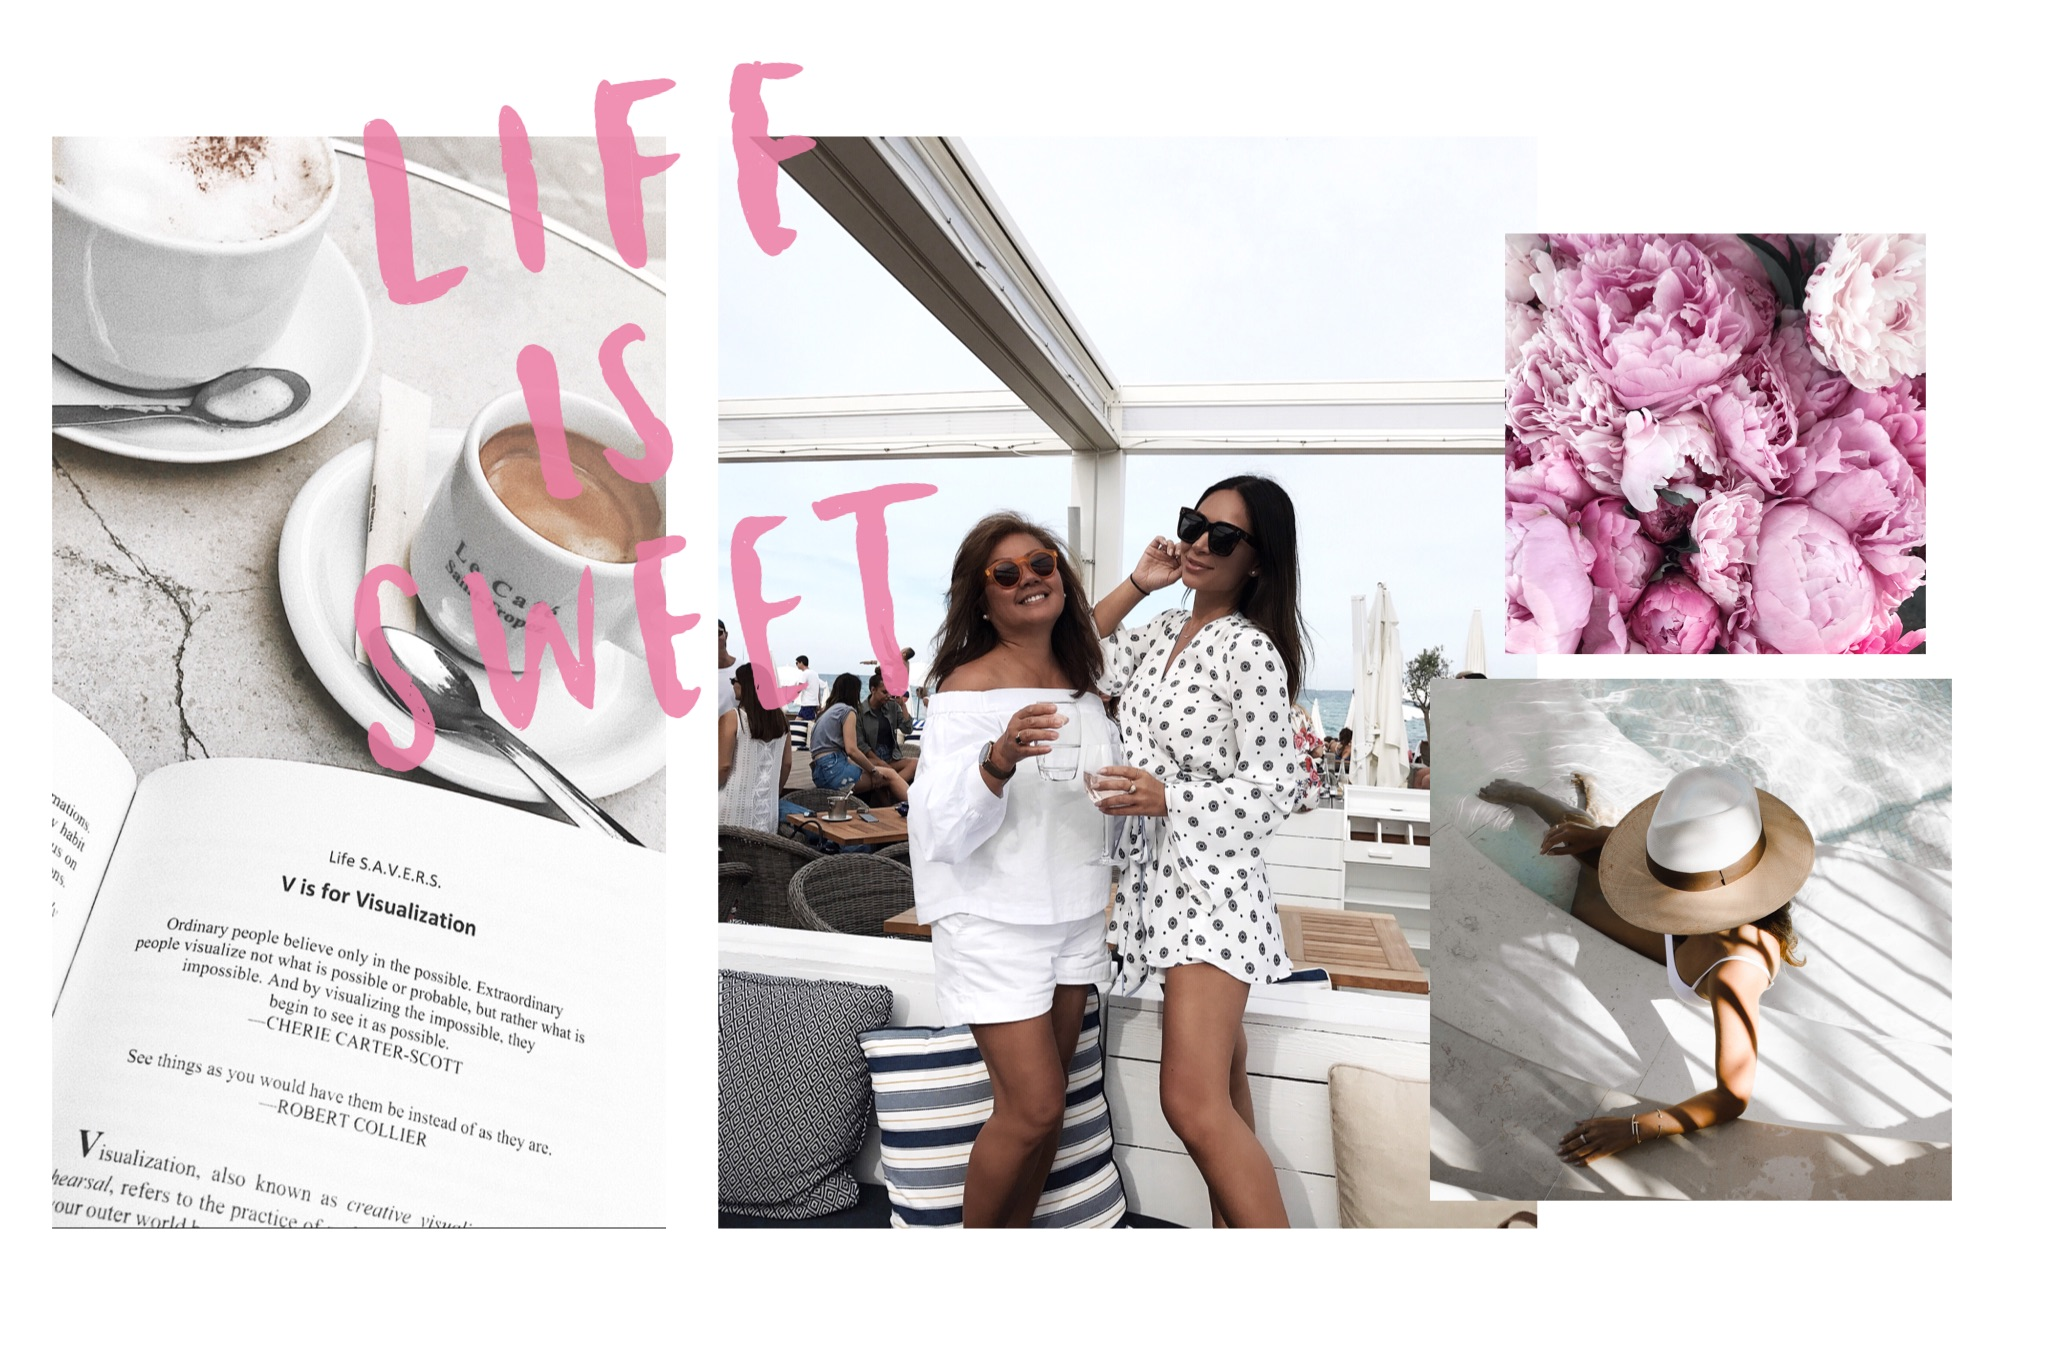 marianna hewitt st tropez saint tropez france guide what to do